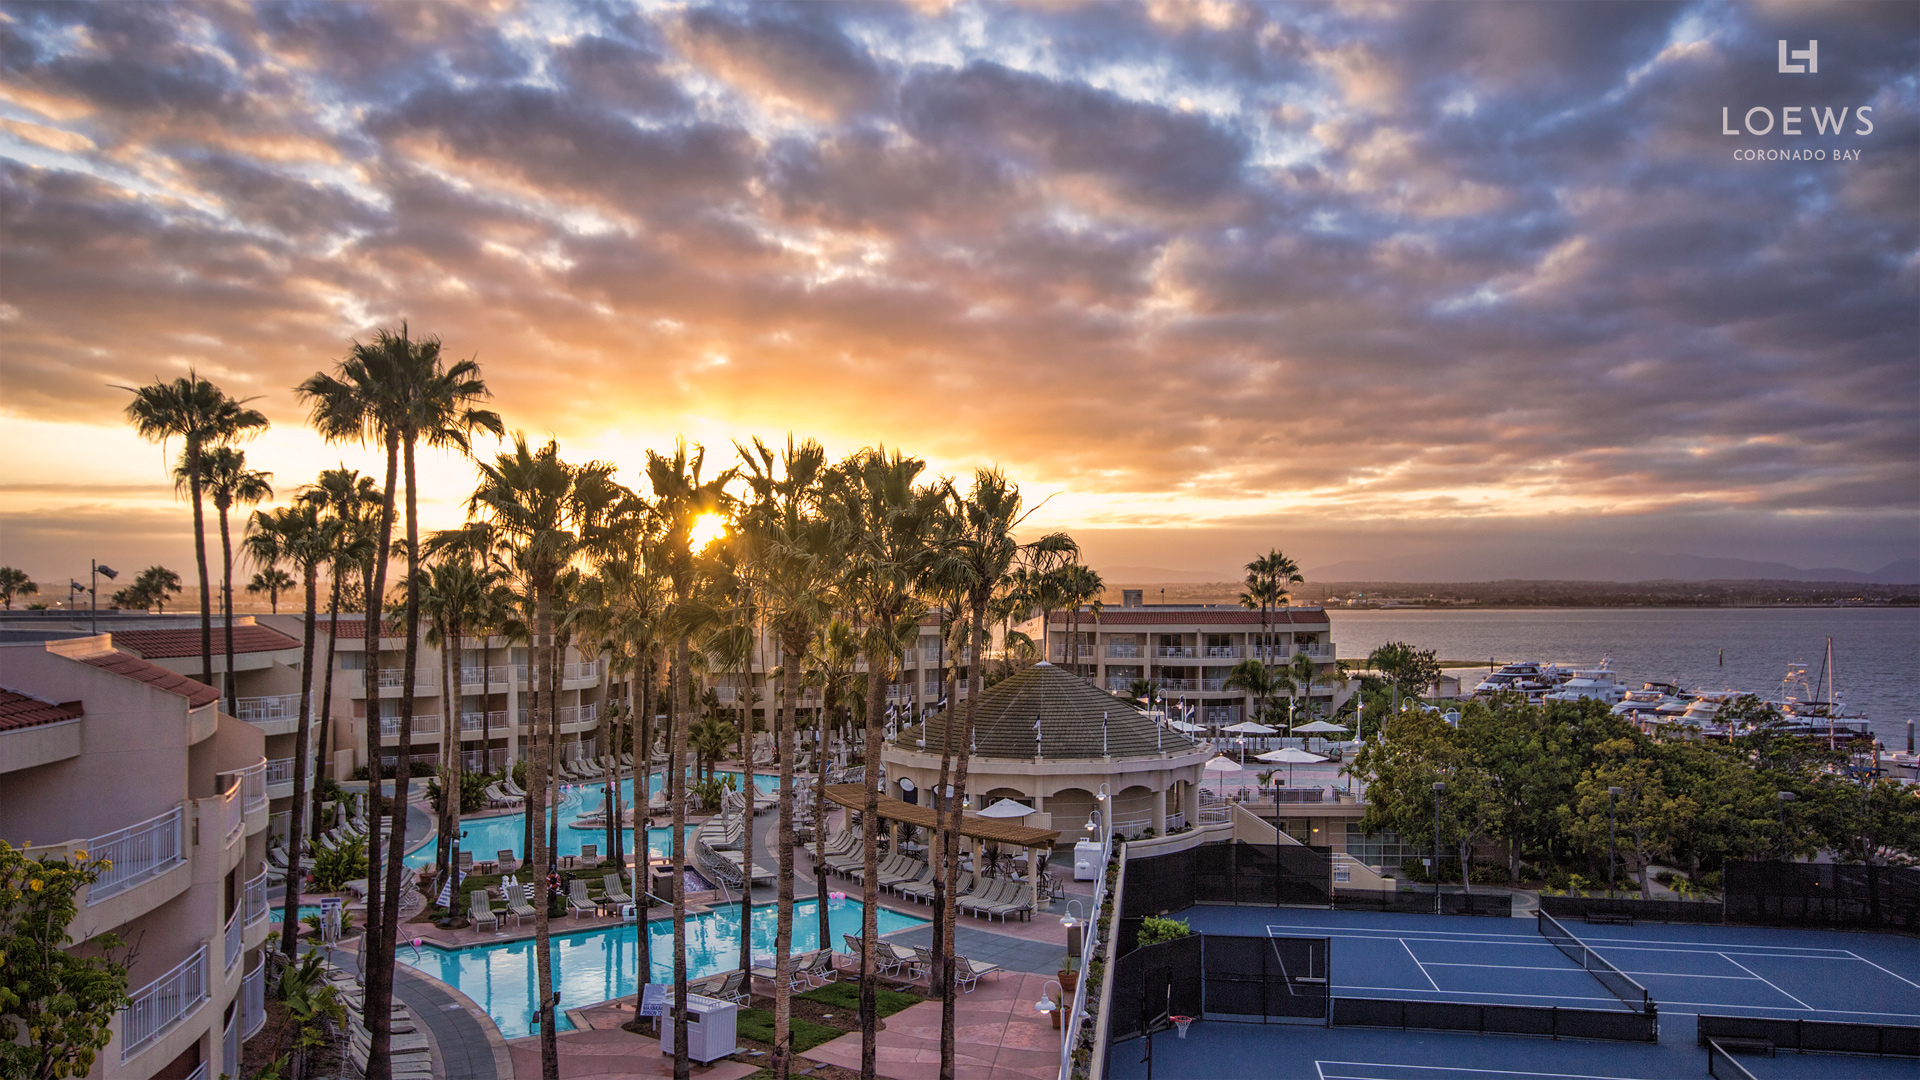 Coronado Beach Resort  7 Reasons Loews Coronado Bay